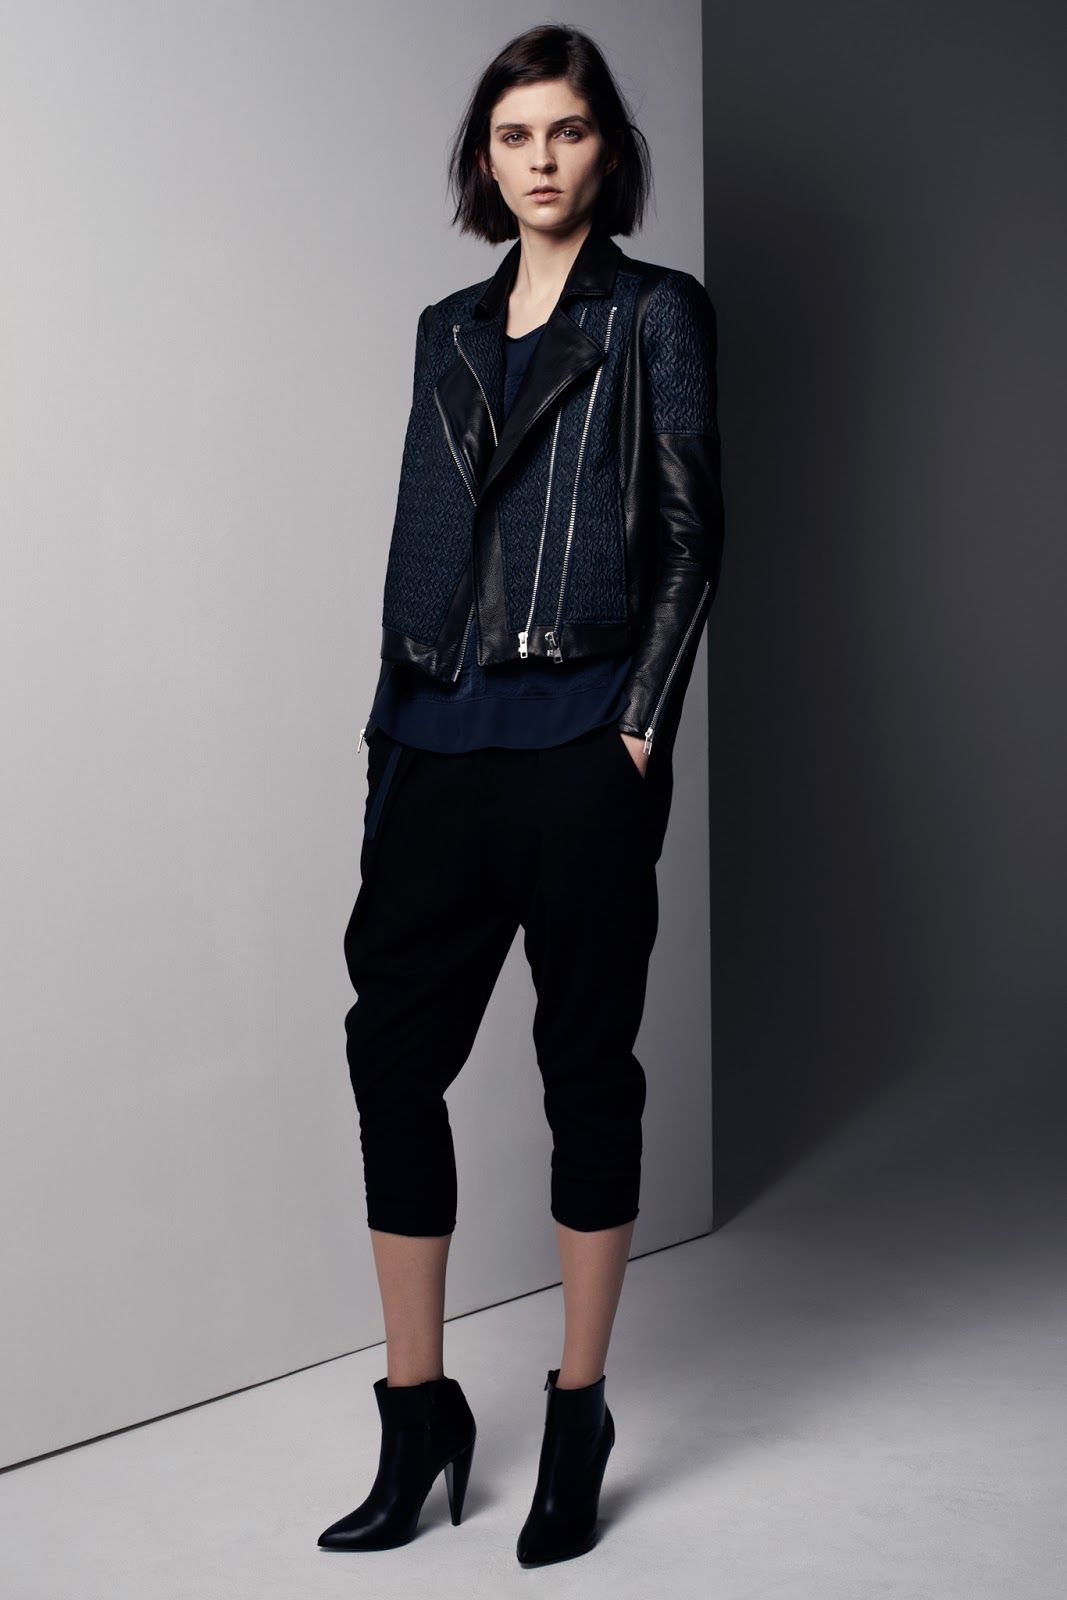 kel markey for helmut lang pre-fall 2013 | visual optimism; fashion editorials, shows, campaigns & more!